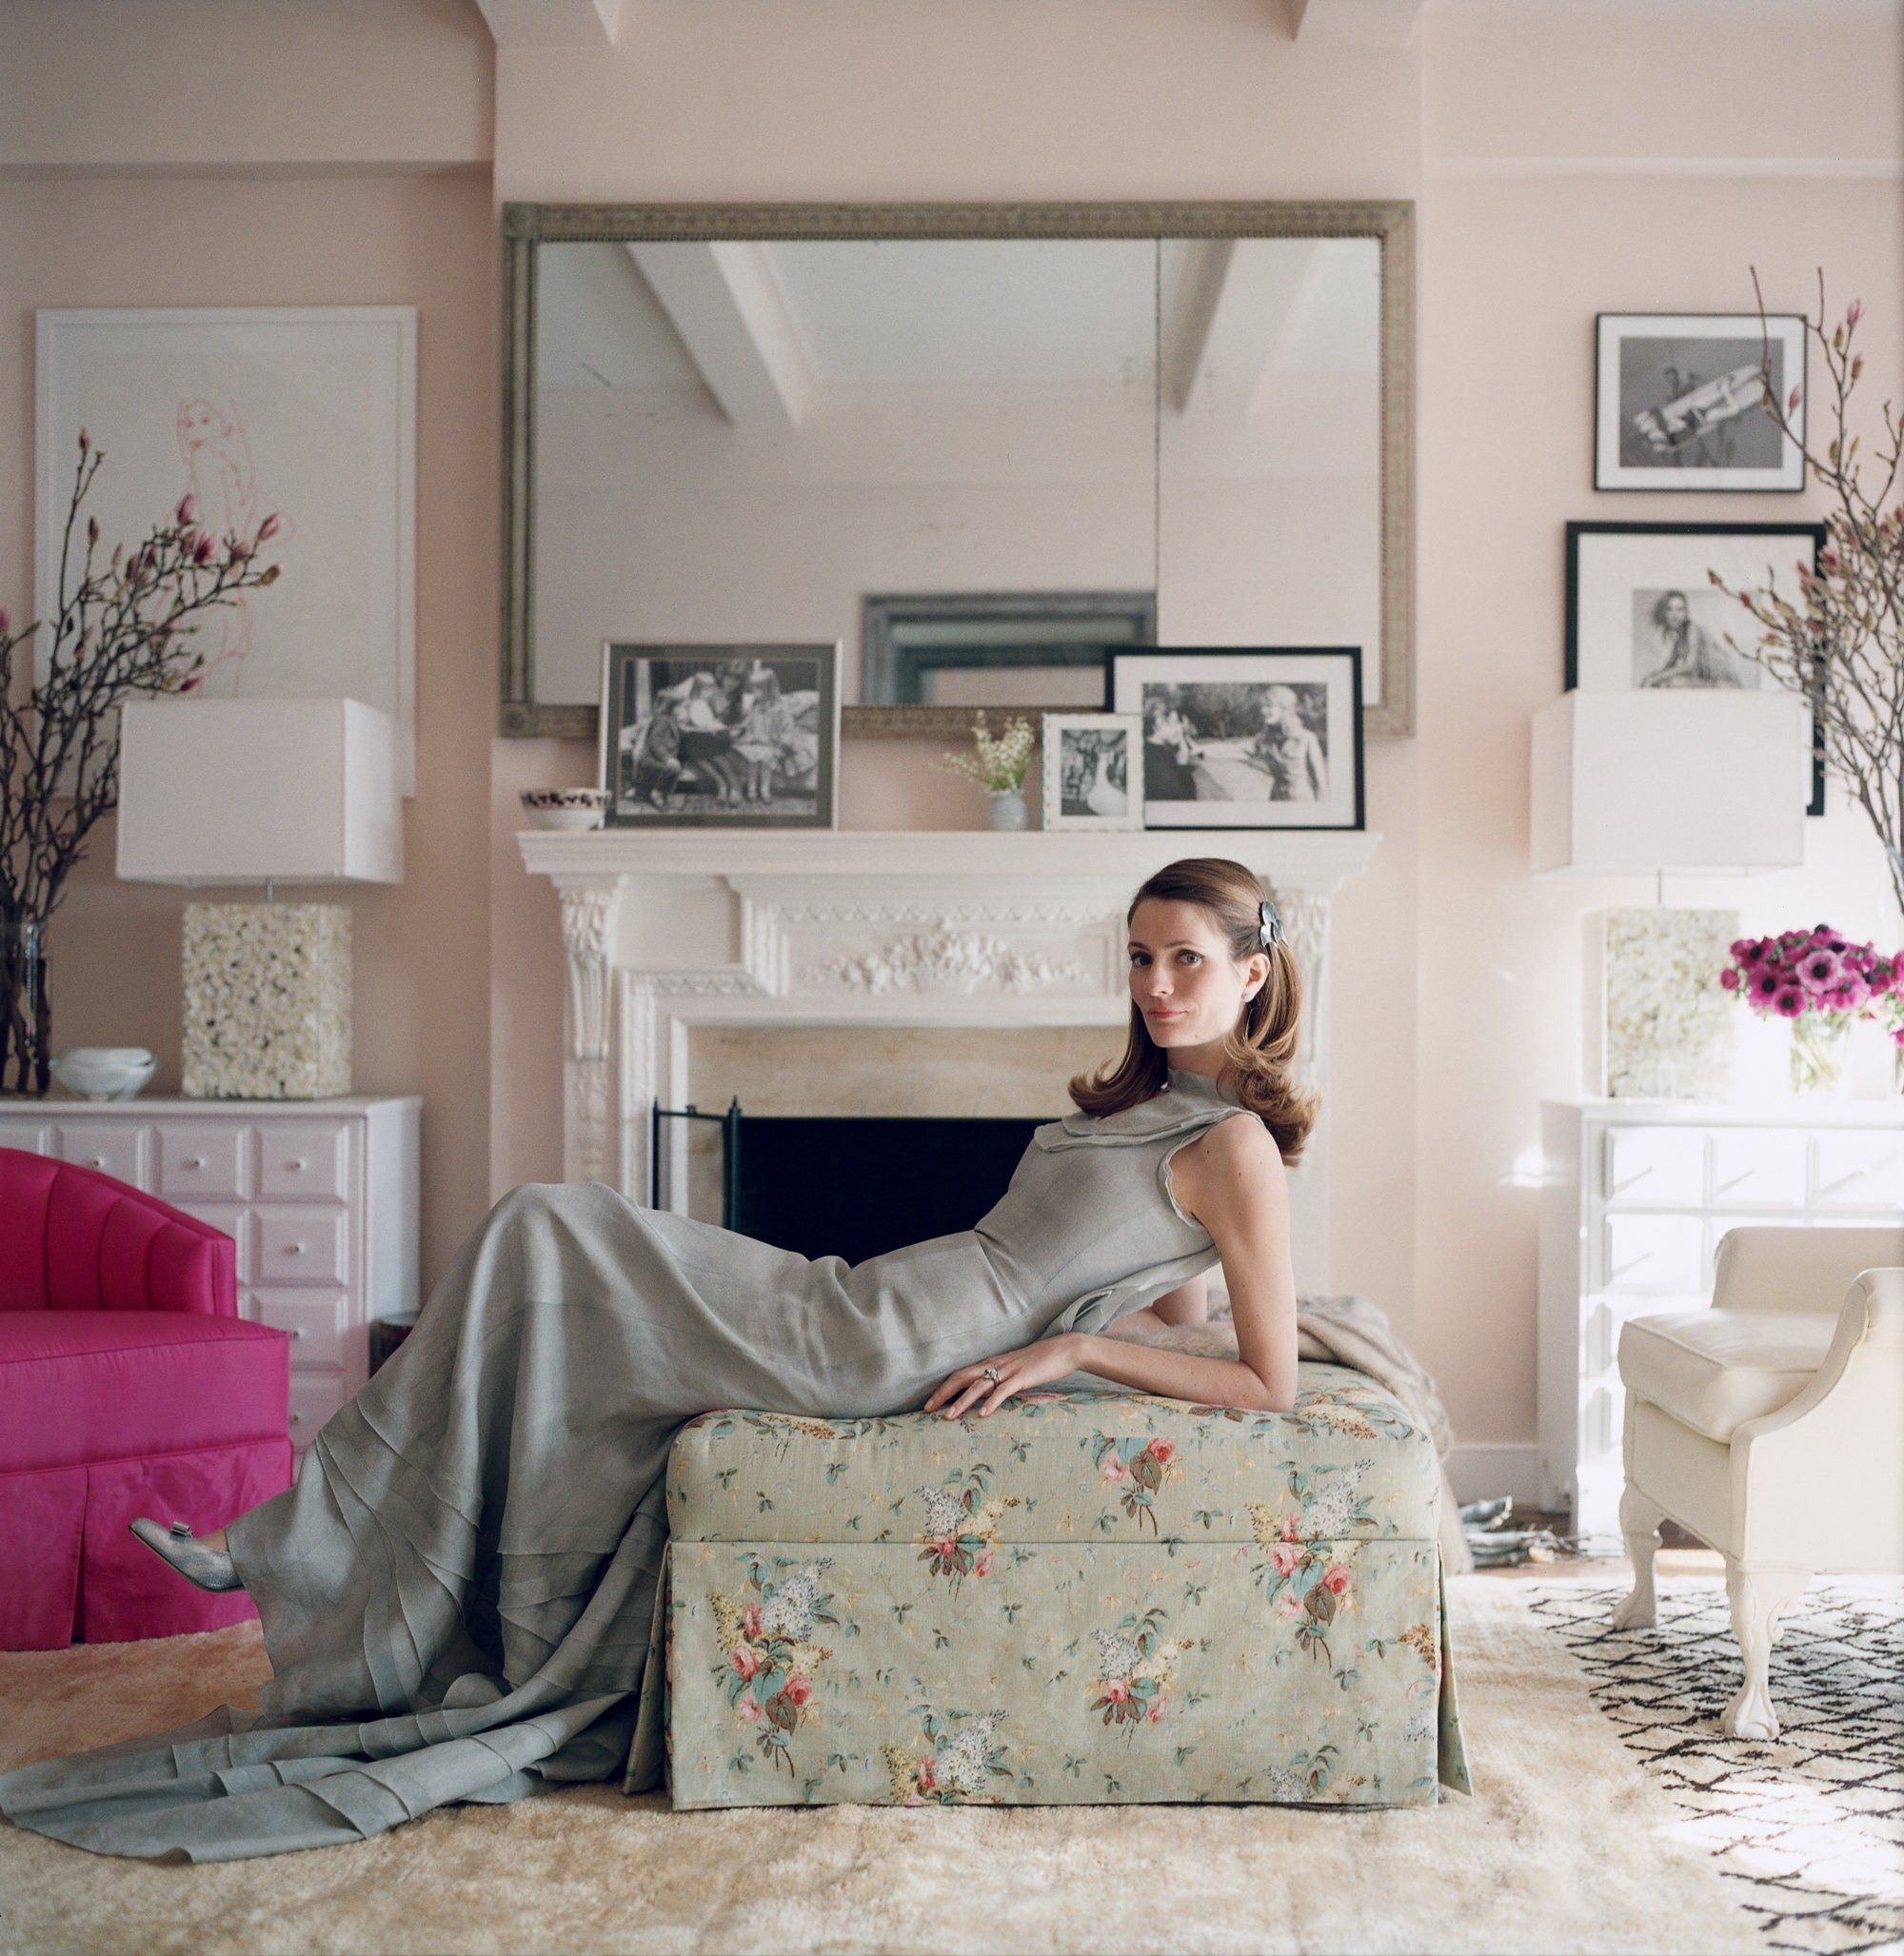 The Best Pink Paint Colors Vogue s Favorite Interior Designers